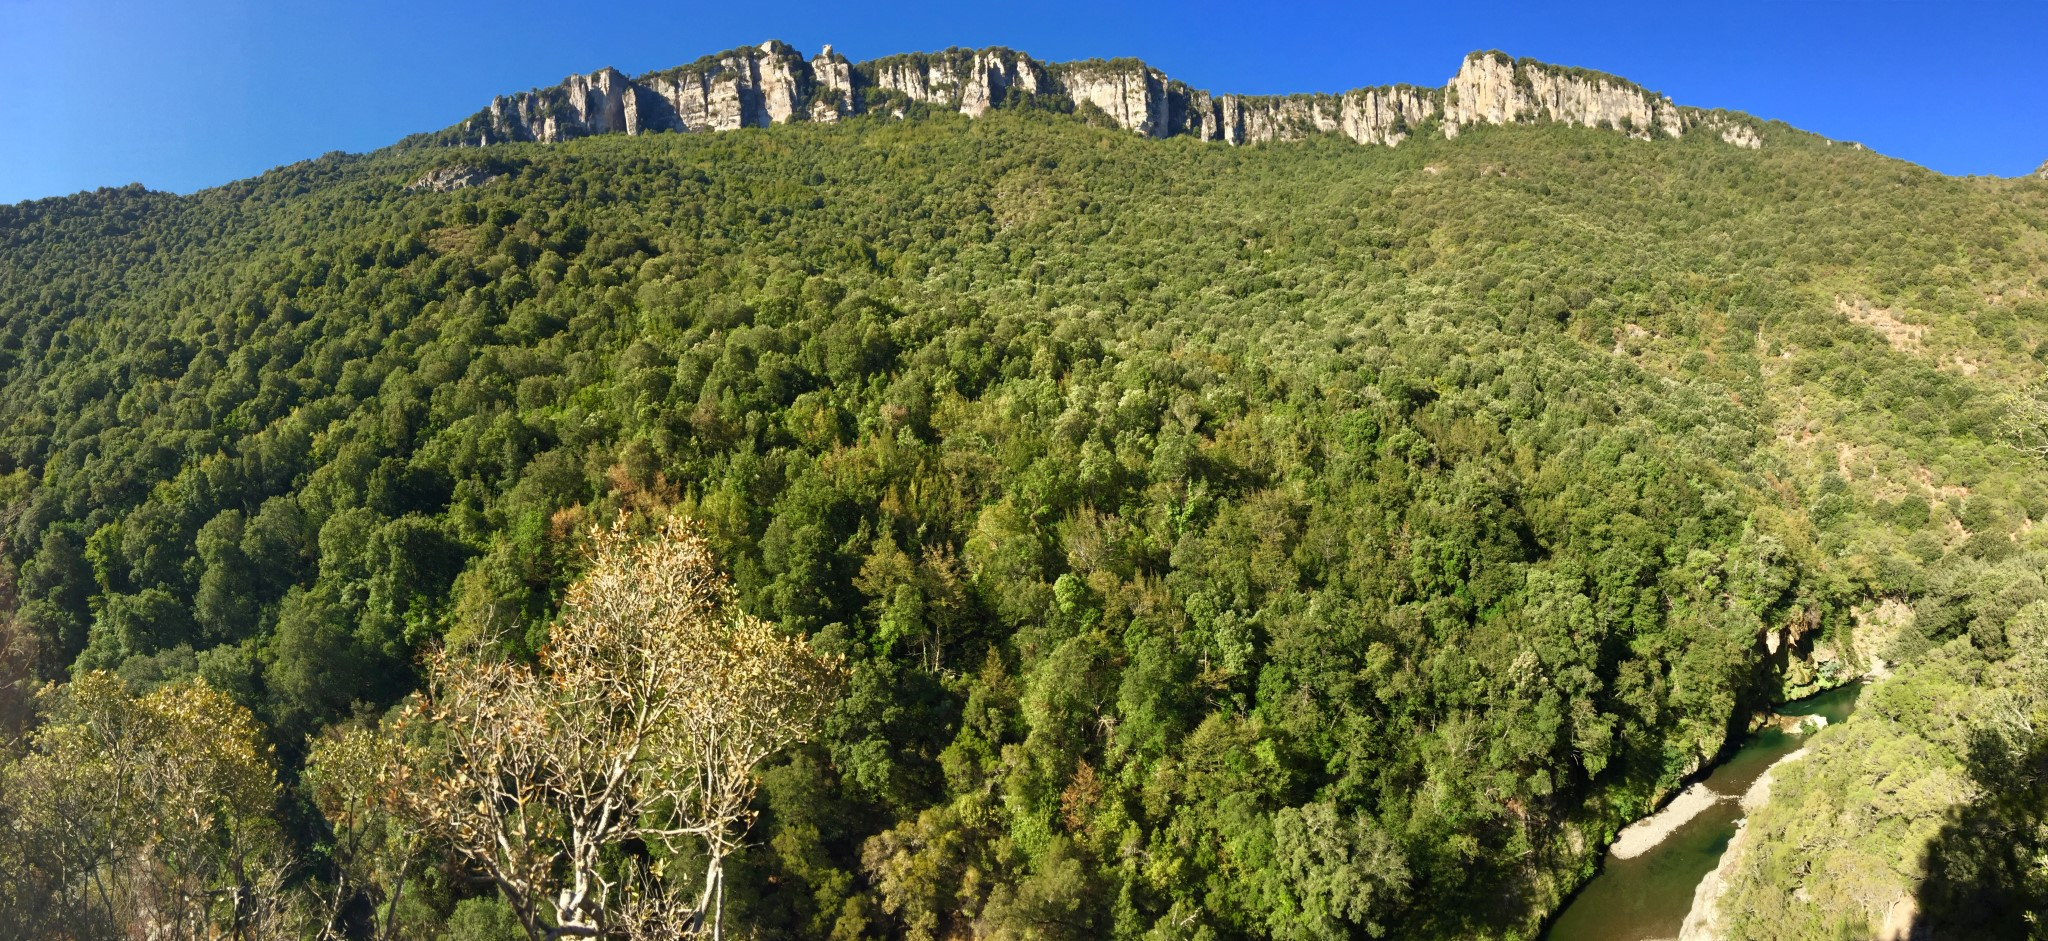 Panoramic view of the green mountains of Barbagia near Seulo in the center of Sardinia